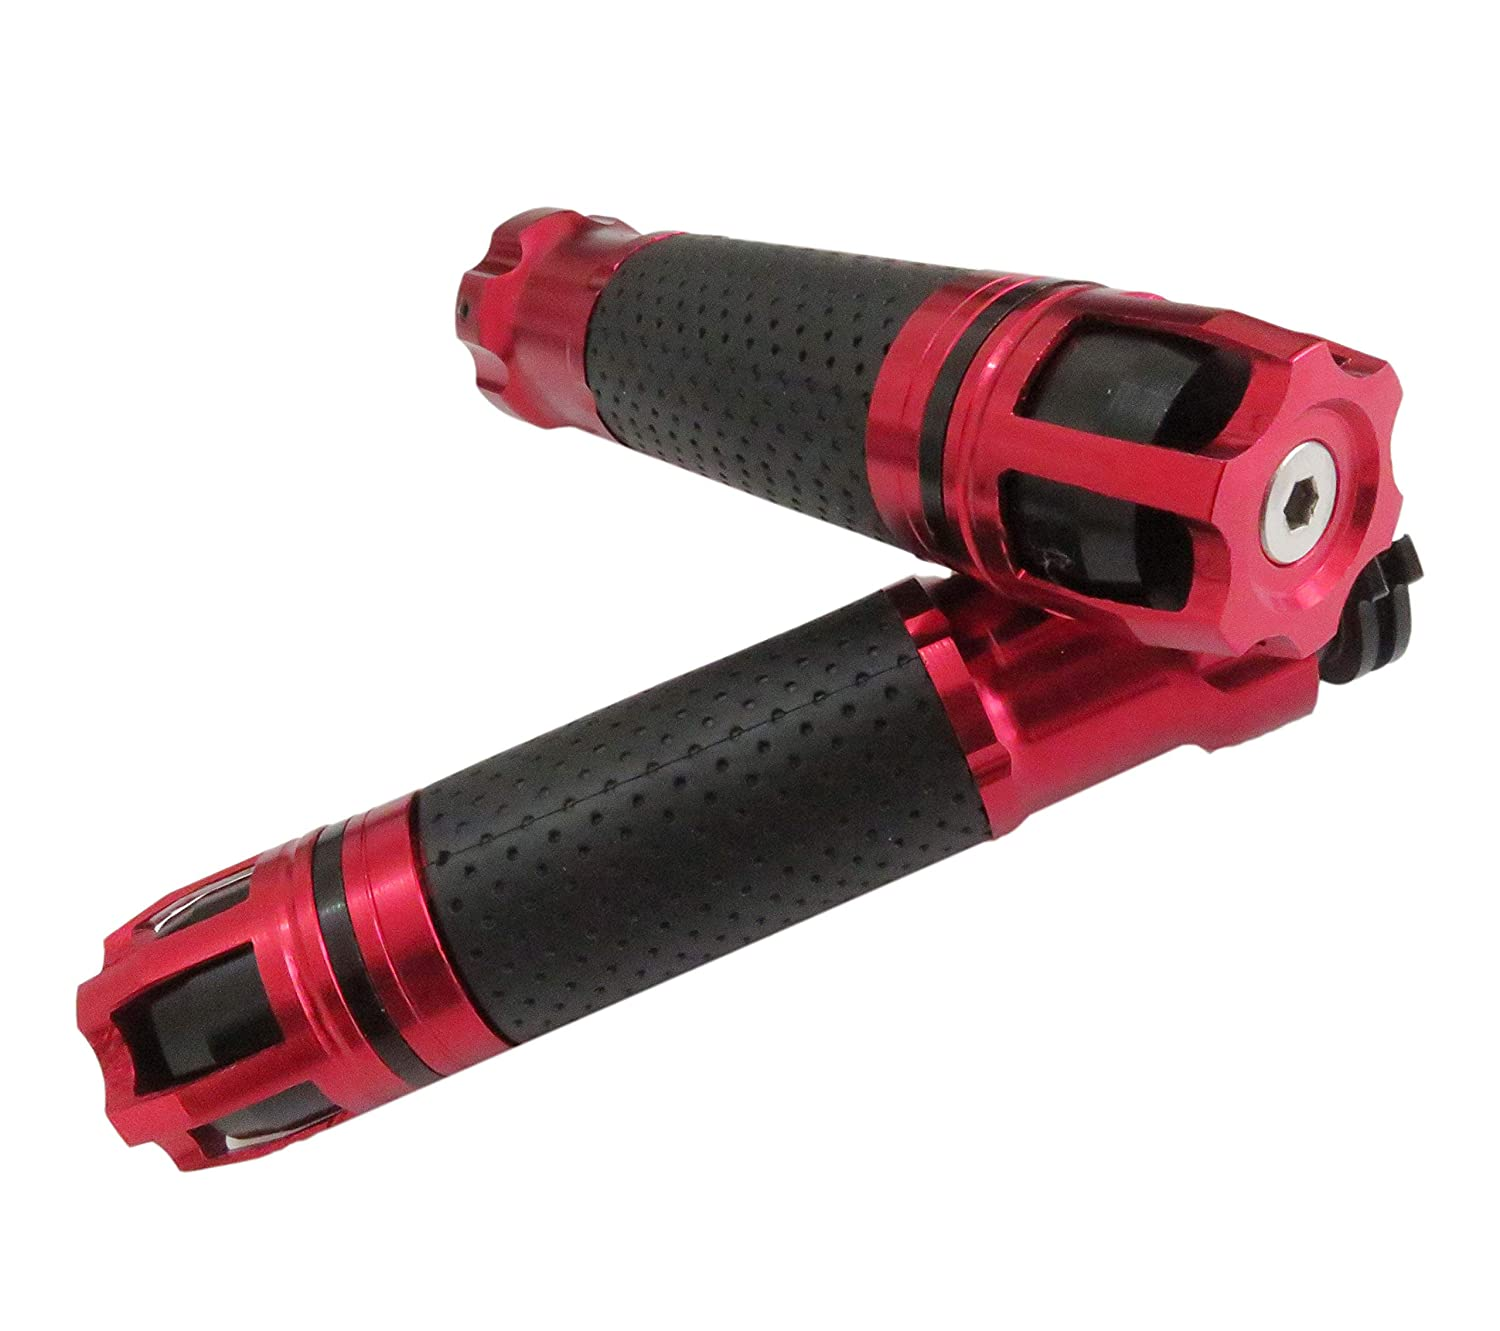 XSPANDER 7//8 Motorcycle Throttle CNC Aluminum Alloy Rotatable Hand Grips Handlebar Bars Grip Red, 1 Pair Left /& Rigt